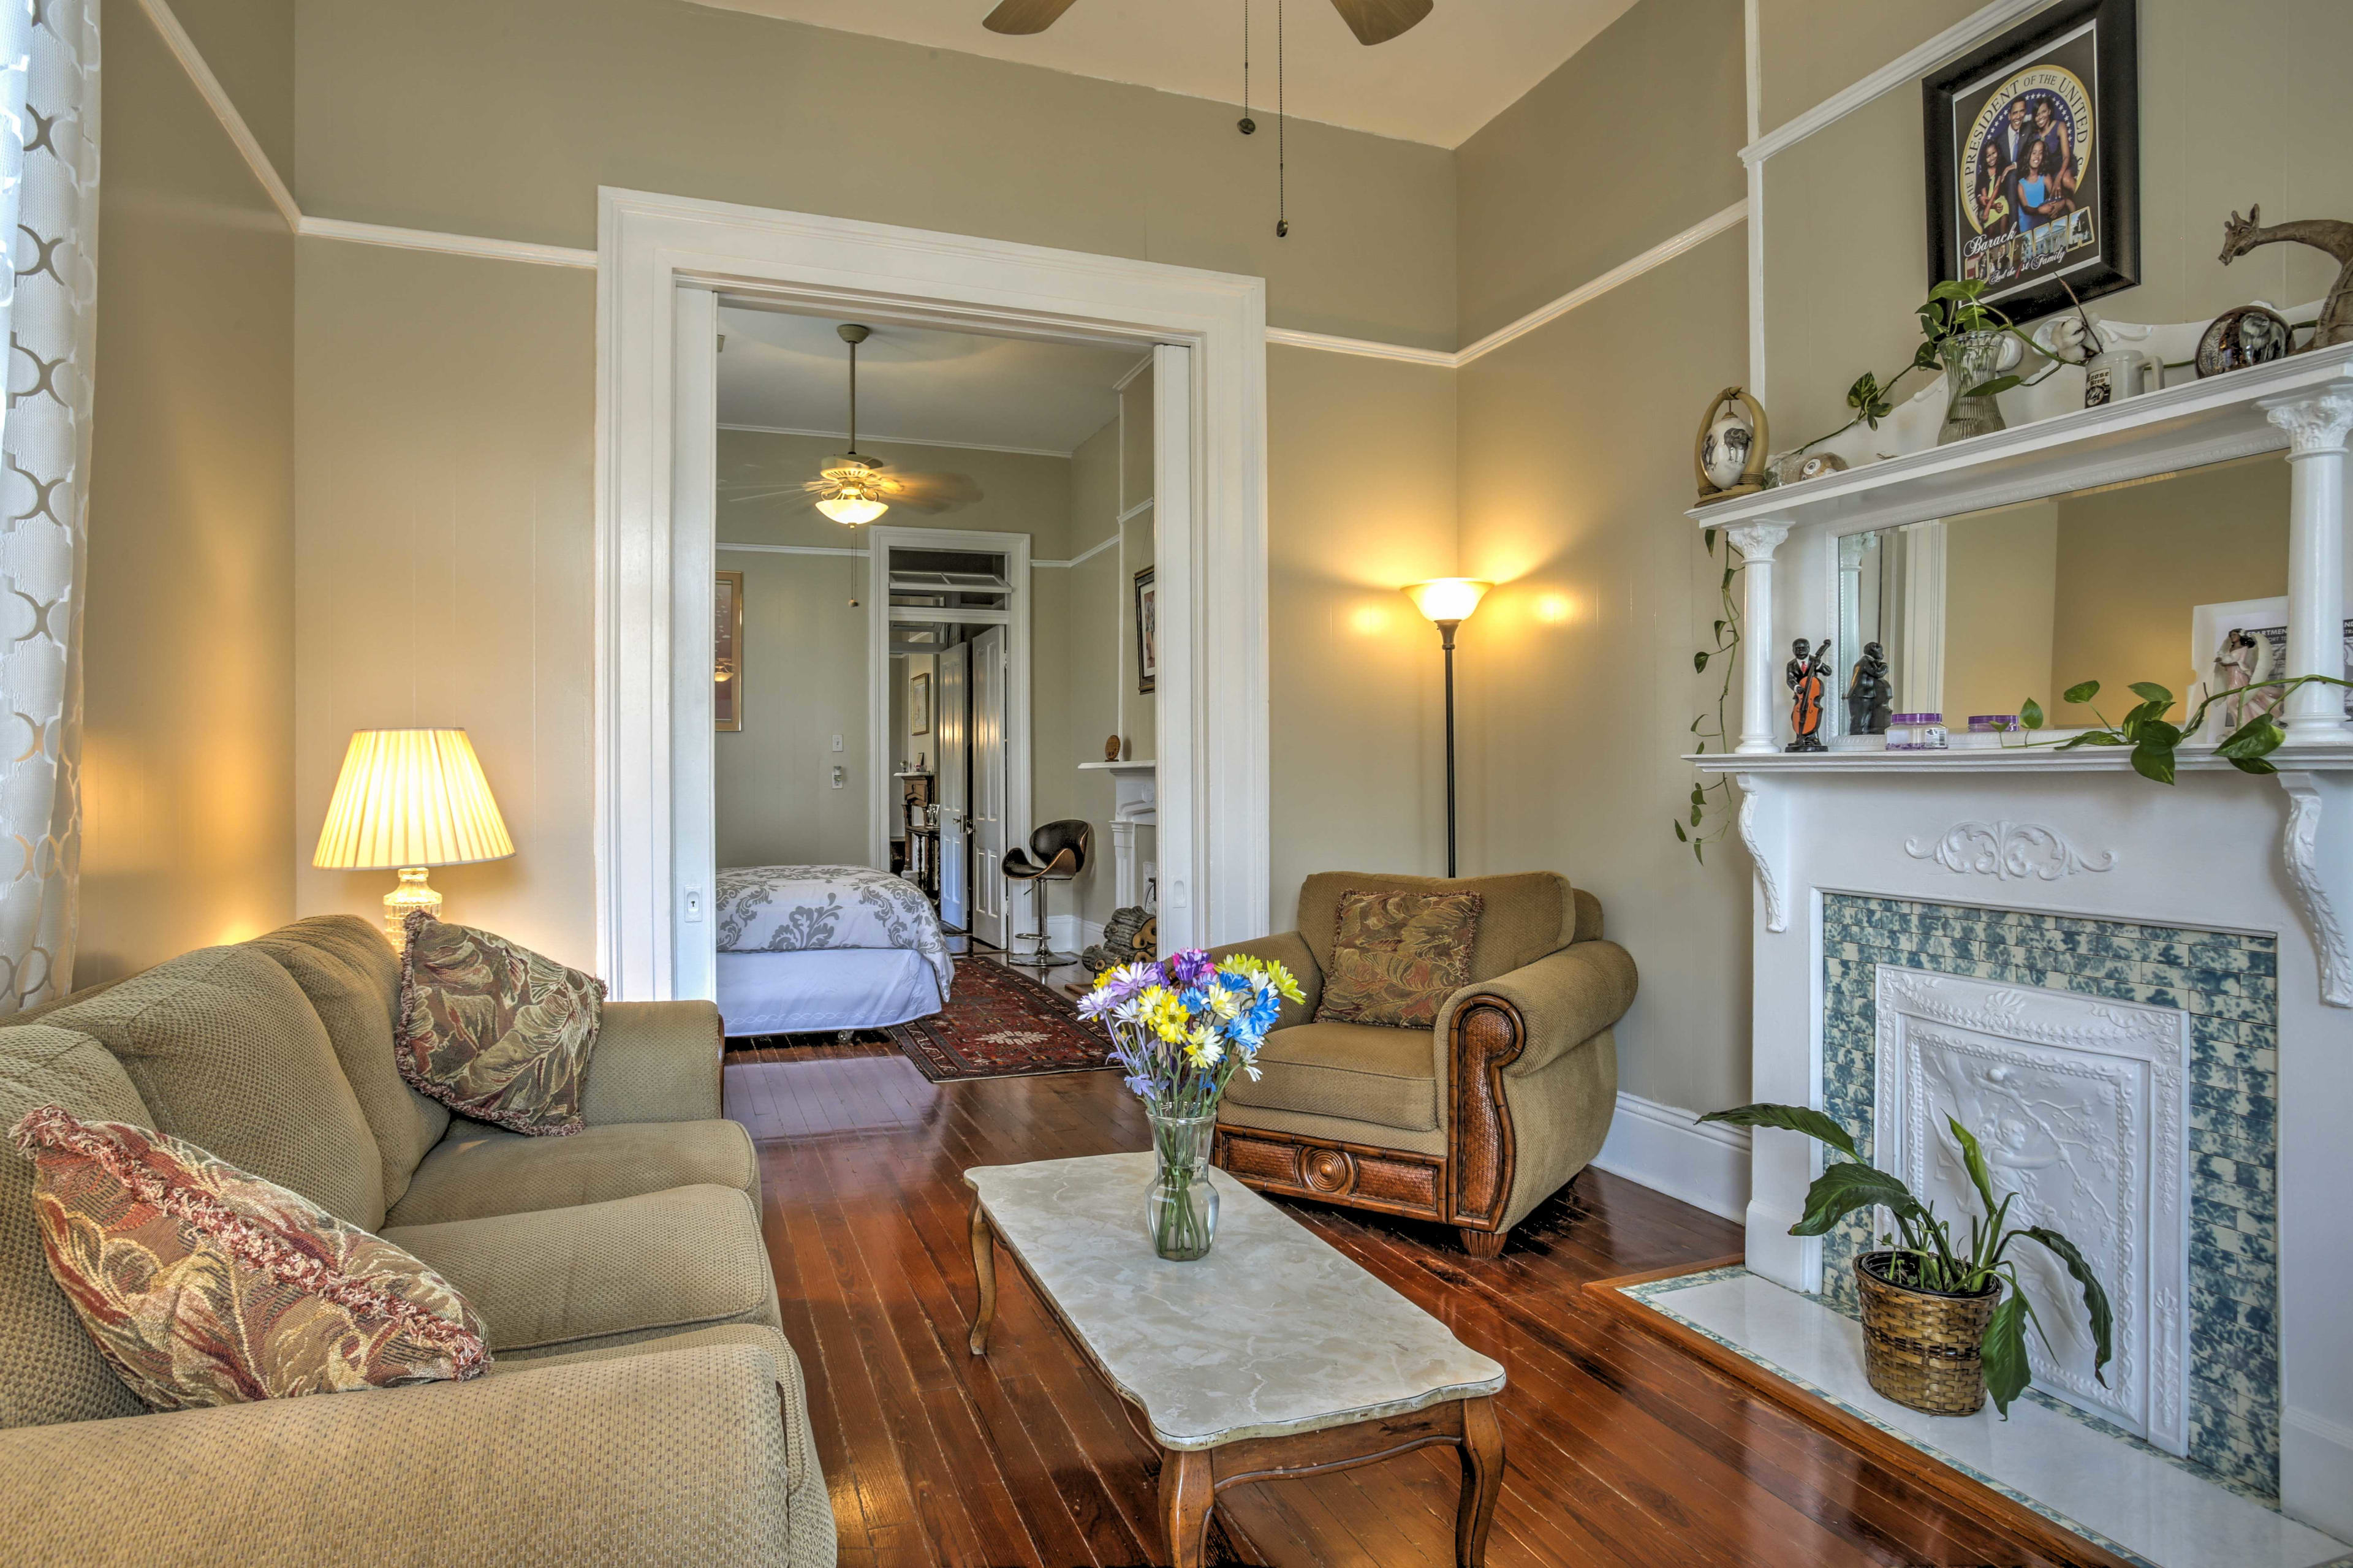 You'll find hardwood floors throughout the home.